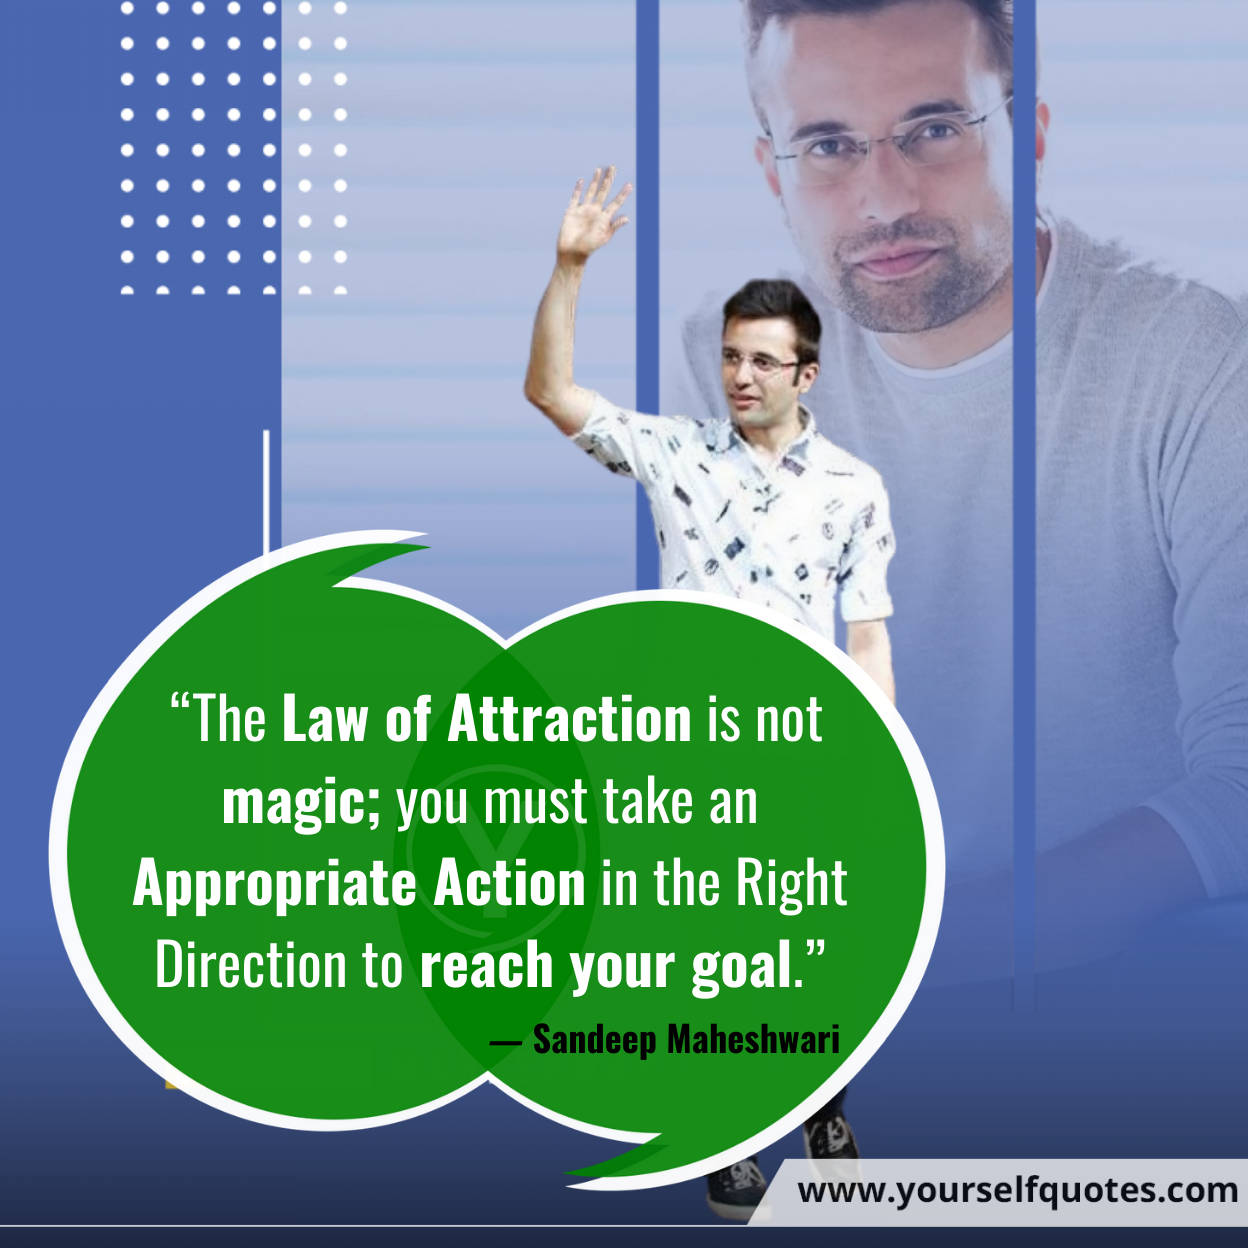 Law of Attraction Quotes by Sandeep Maheshwari